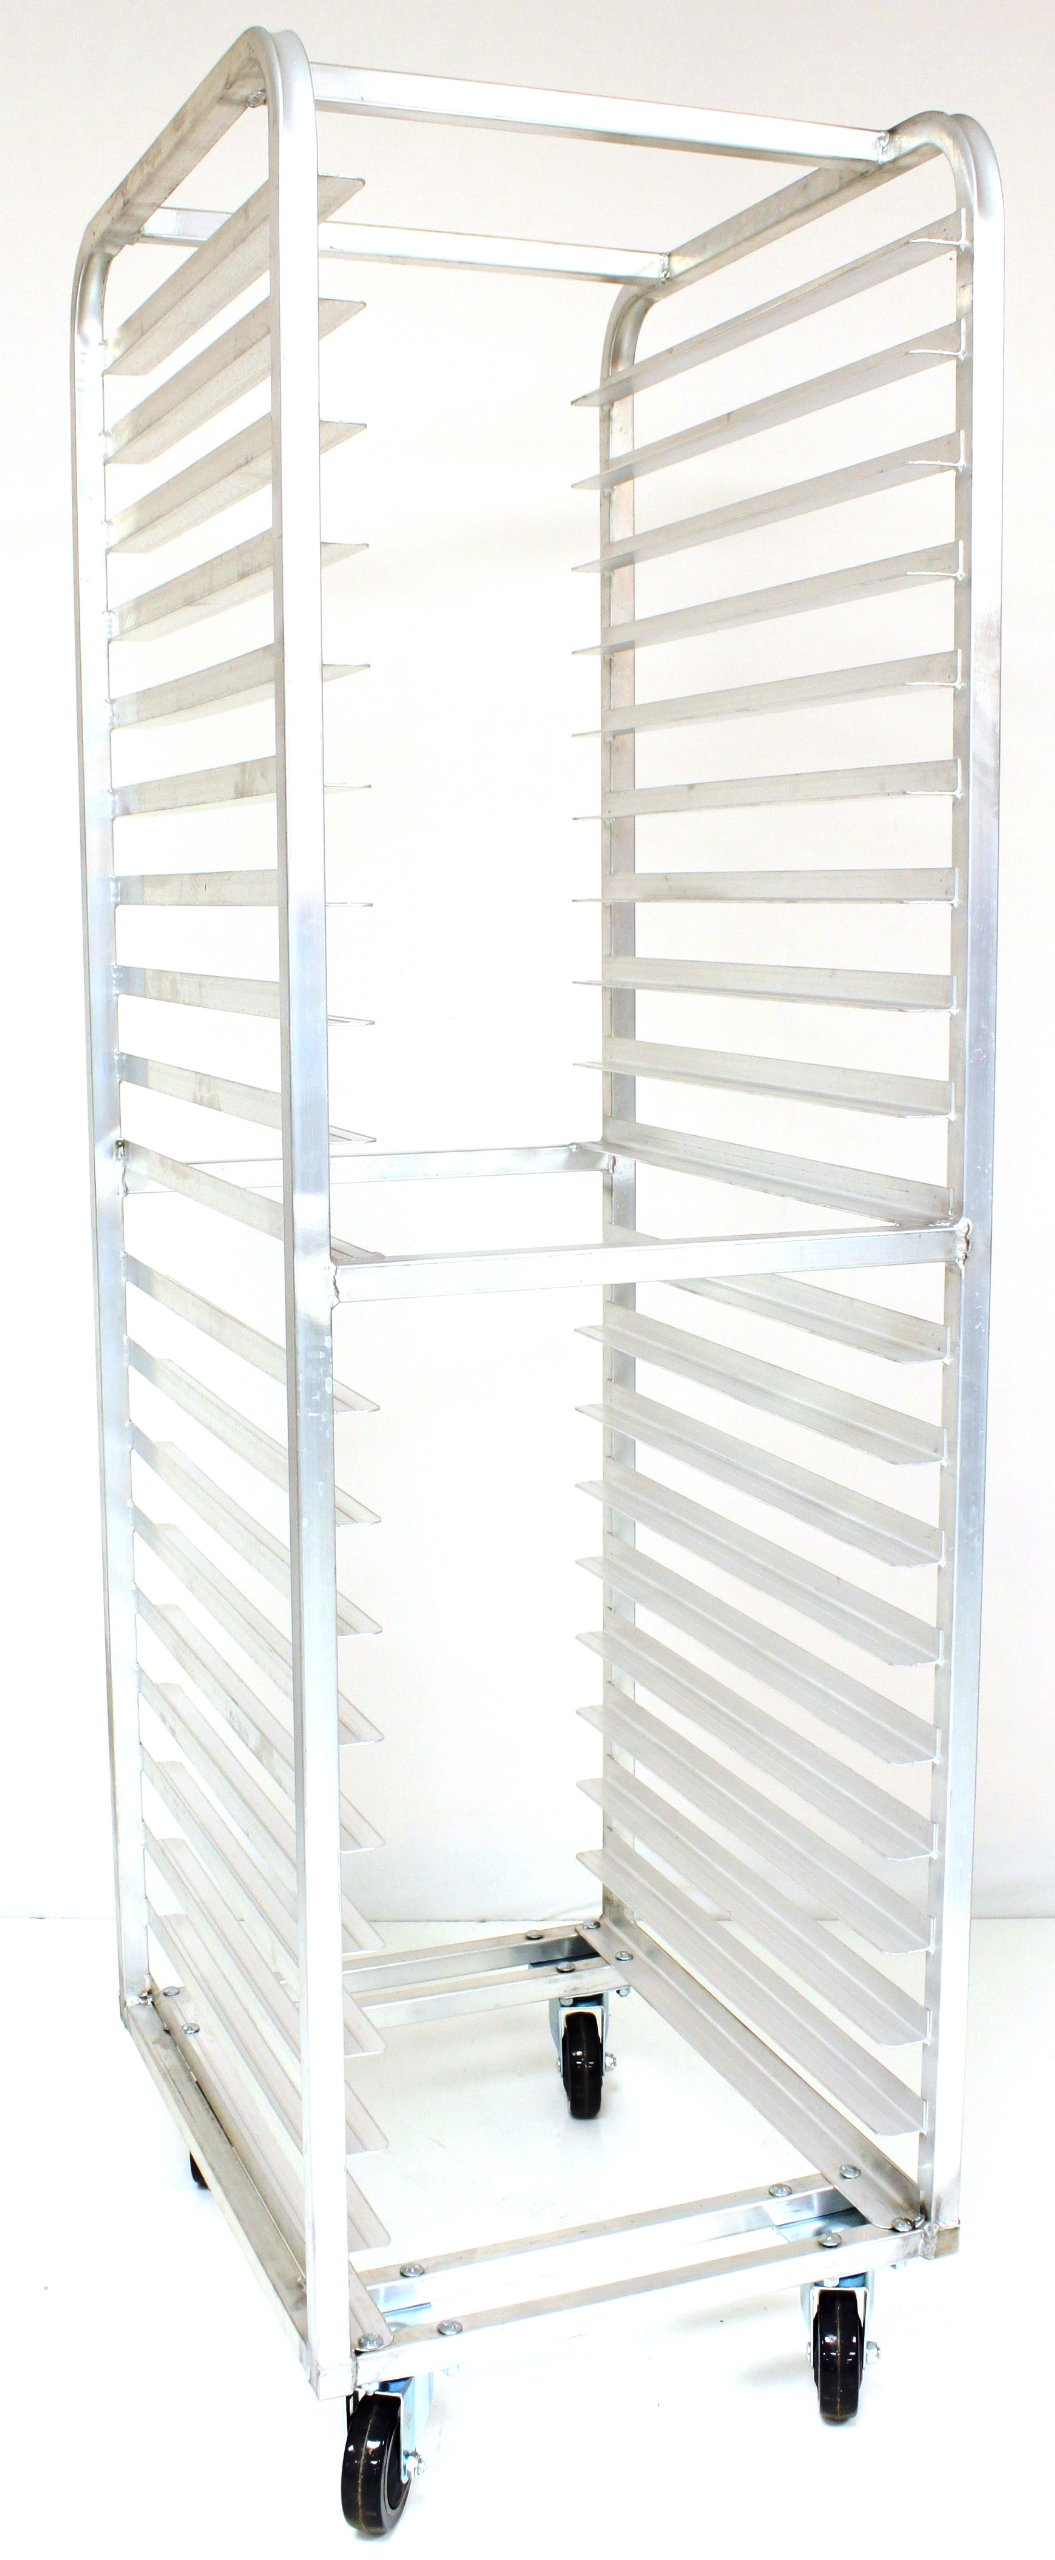 Magna Industries 4612E Standard-Duty Aluminum End-Load Bun Pan Rack with Plate Casters, 20-1/2'' Width x 70'' Height x 26'' Depth, 20 Shelves